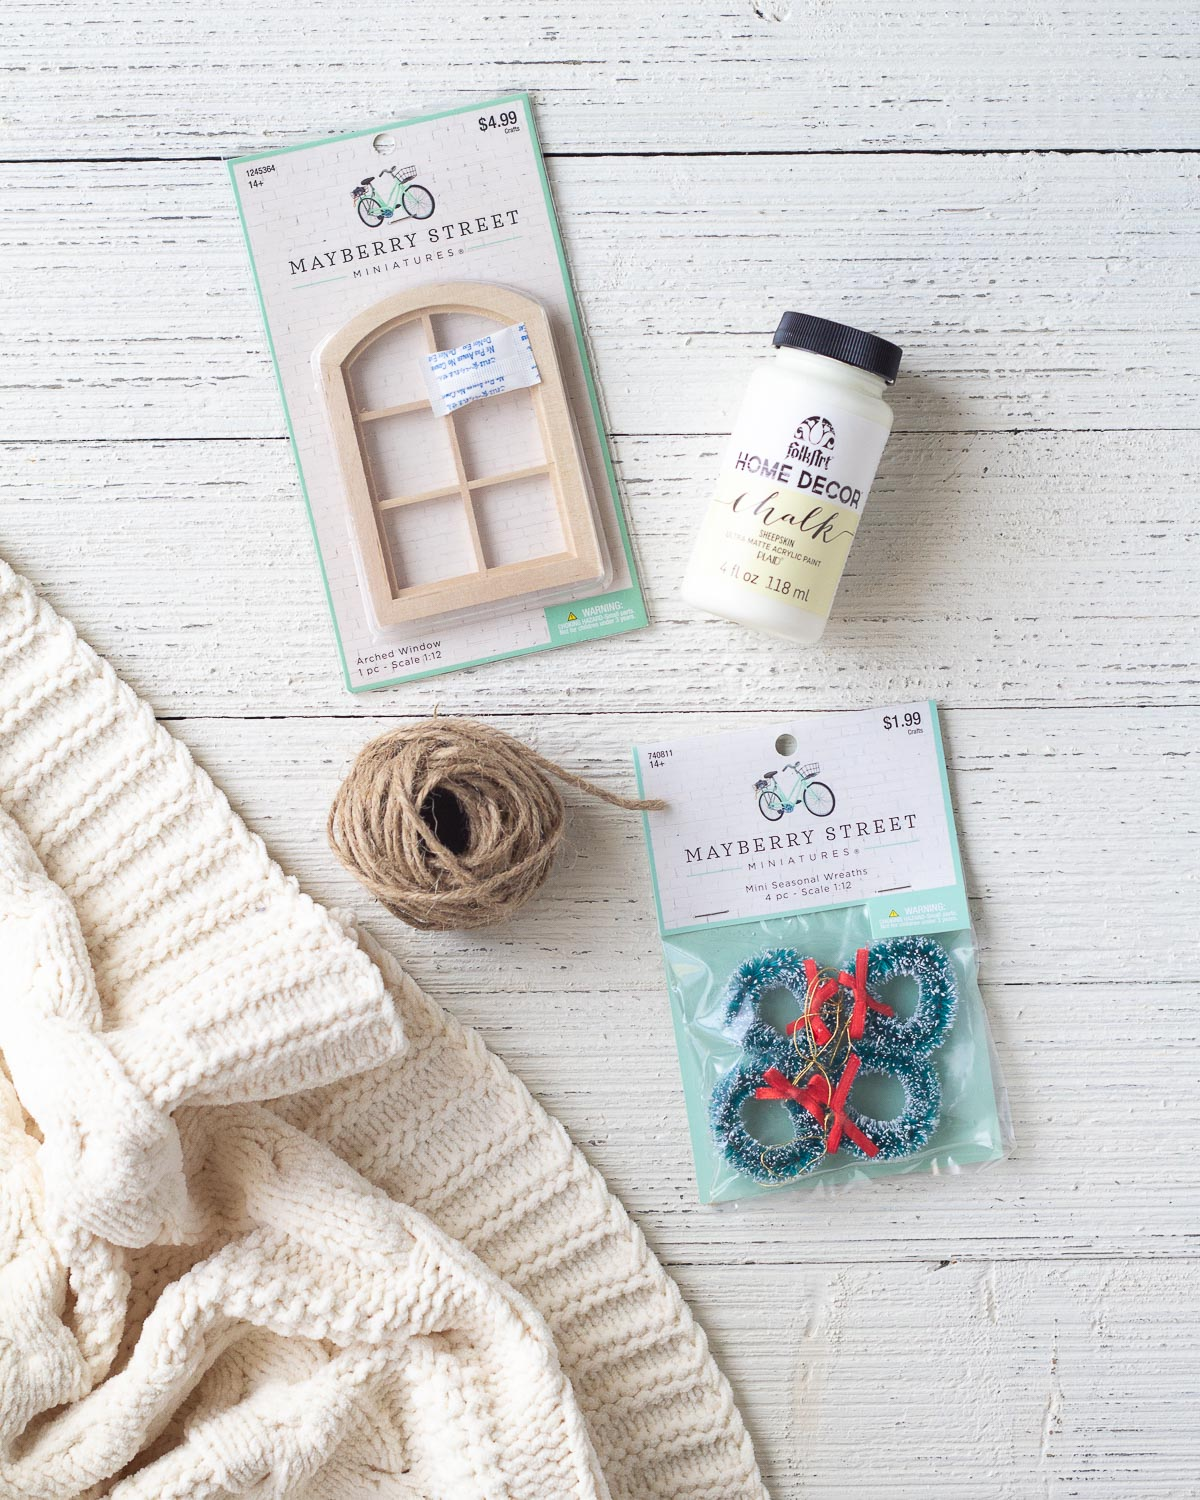 Supplies for a DIY Christmas ornament including chalk style paint, mini wreaths, a dollhouse window, and twine.